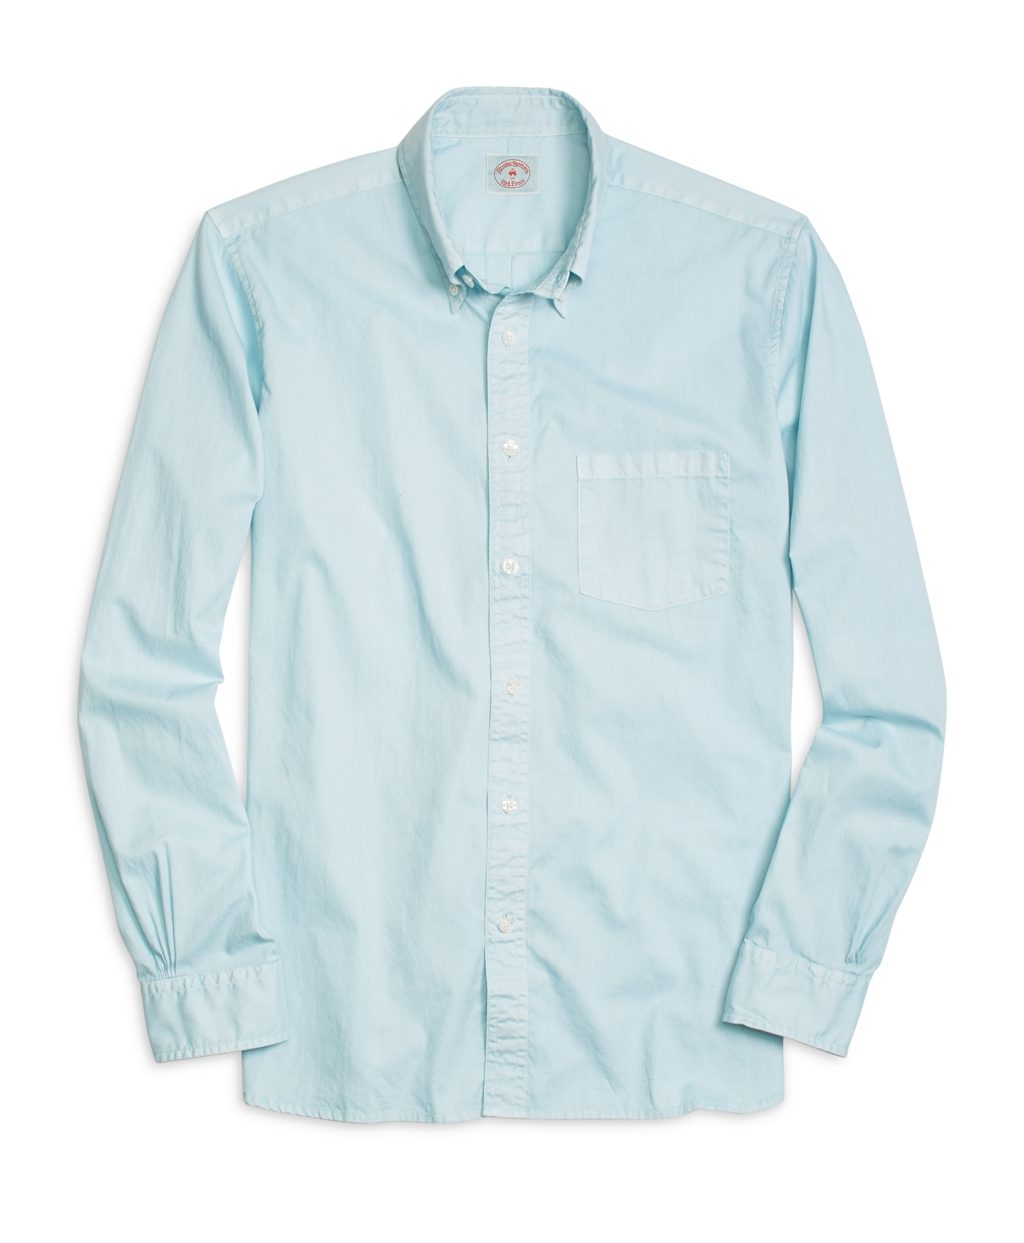 Brooks brothers oxford sport shirt in blue for men aqua for Brooks brothers sports shirts